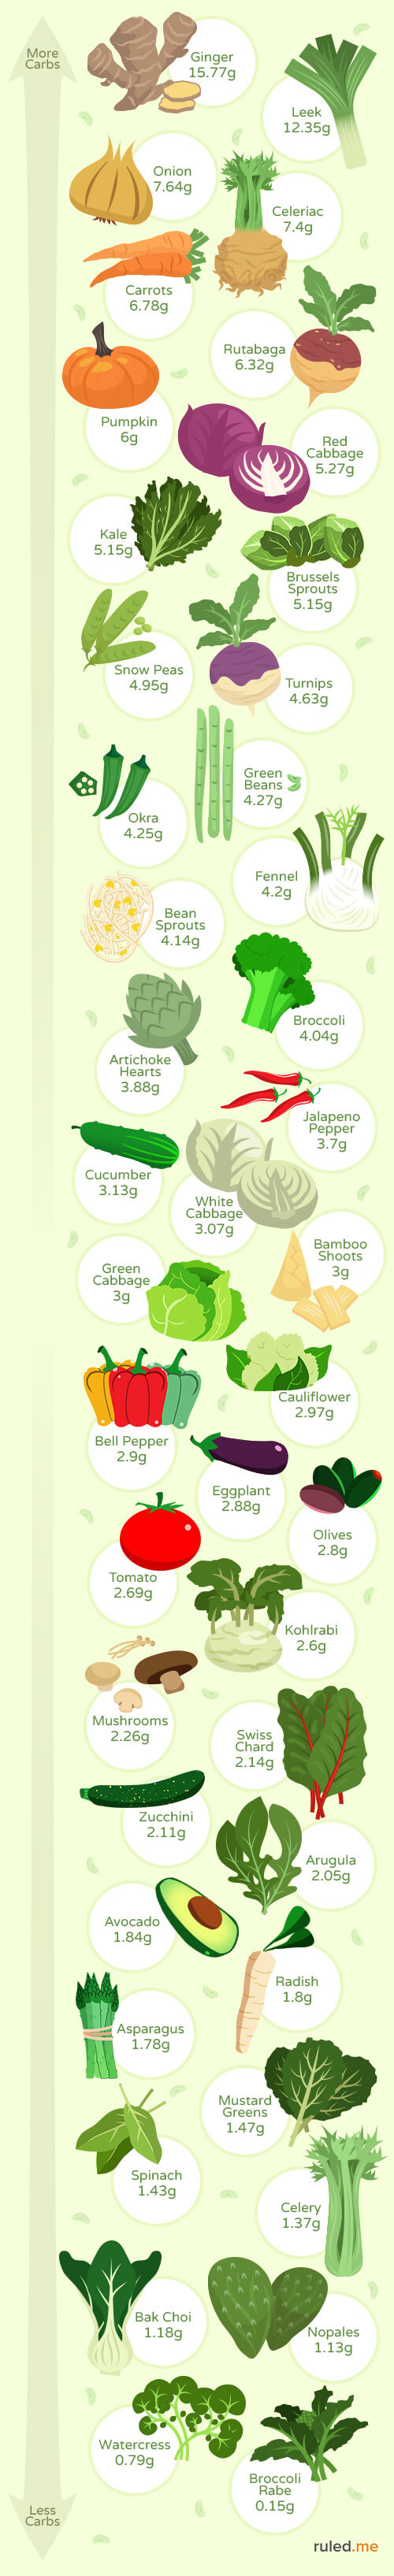 10 Low-Carb Keto Diet Vegetables